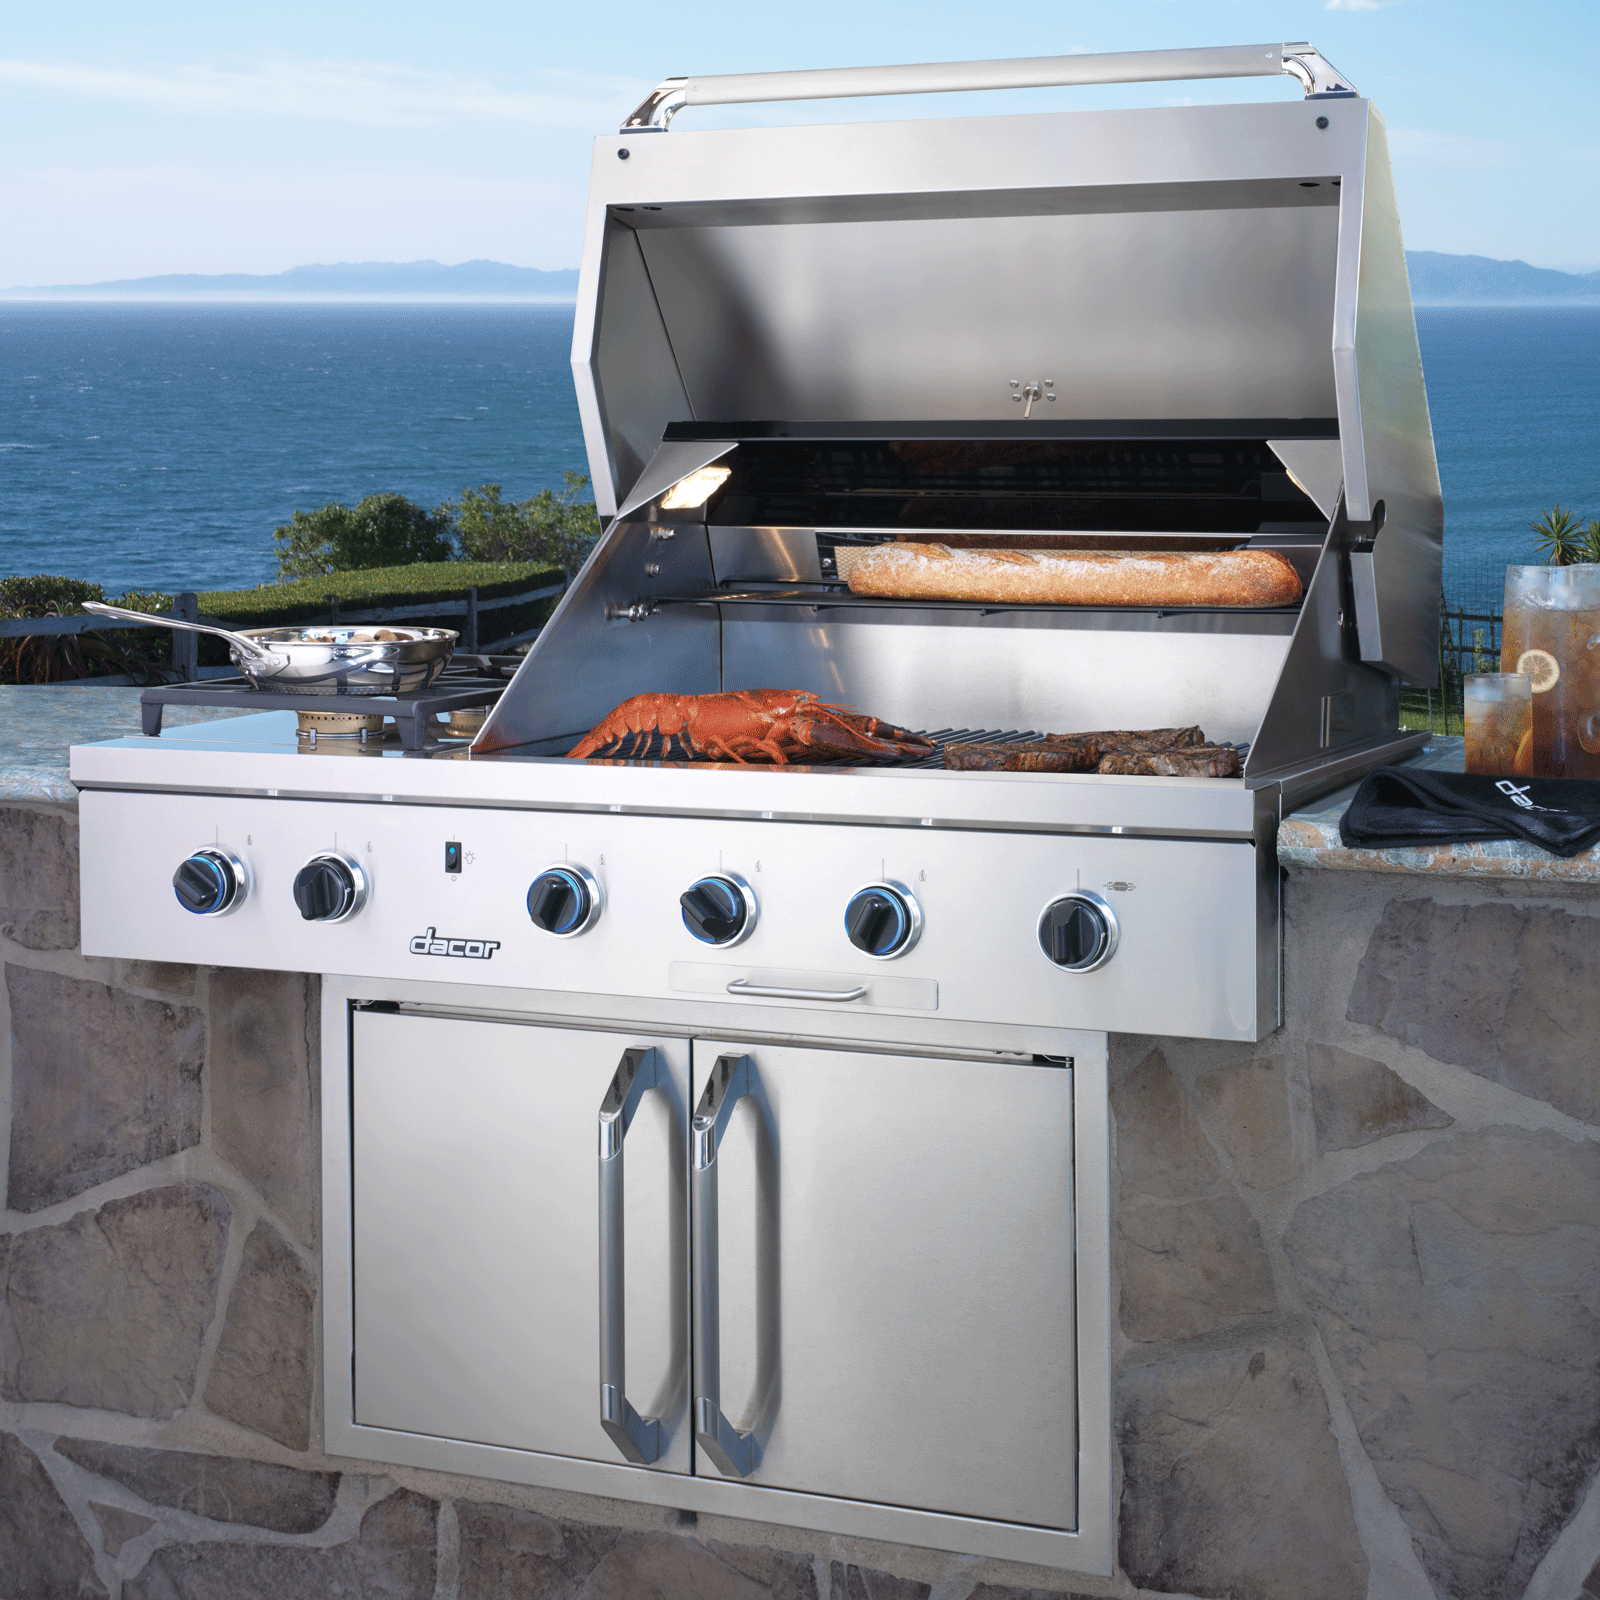 "Dacor Heritage 52"" Outdoor Grill, in Stainless Steel with Chrome Trim, includes Sear Burner, Natural Gas"